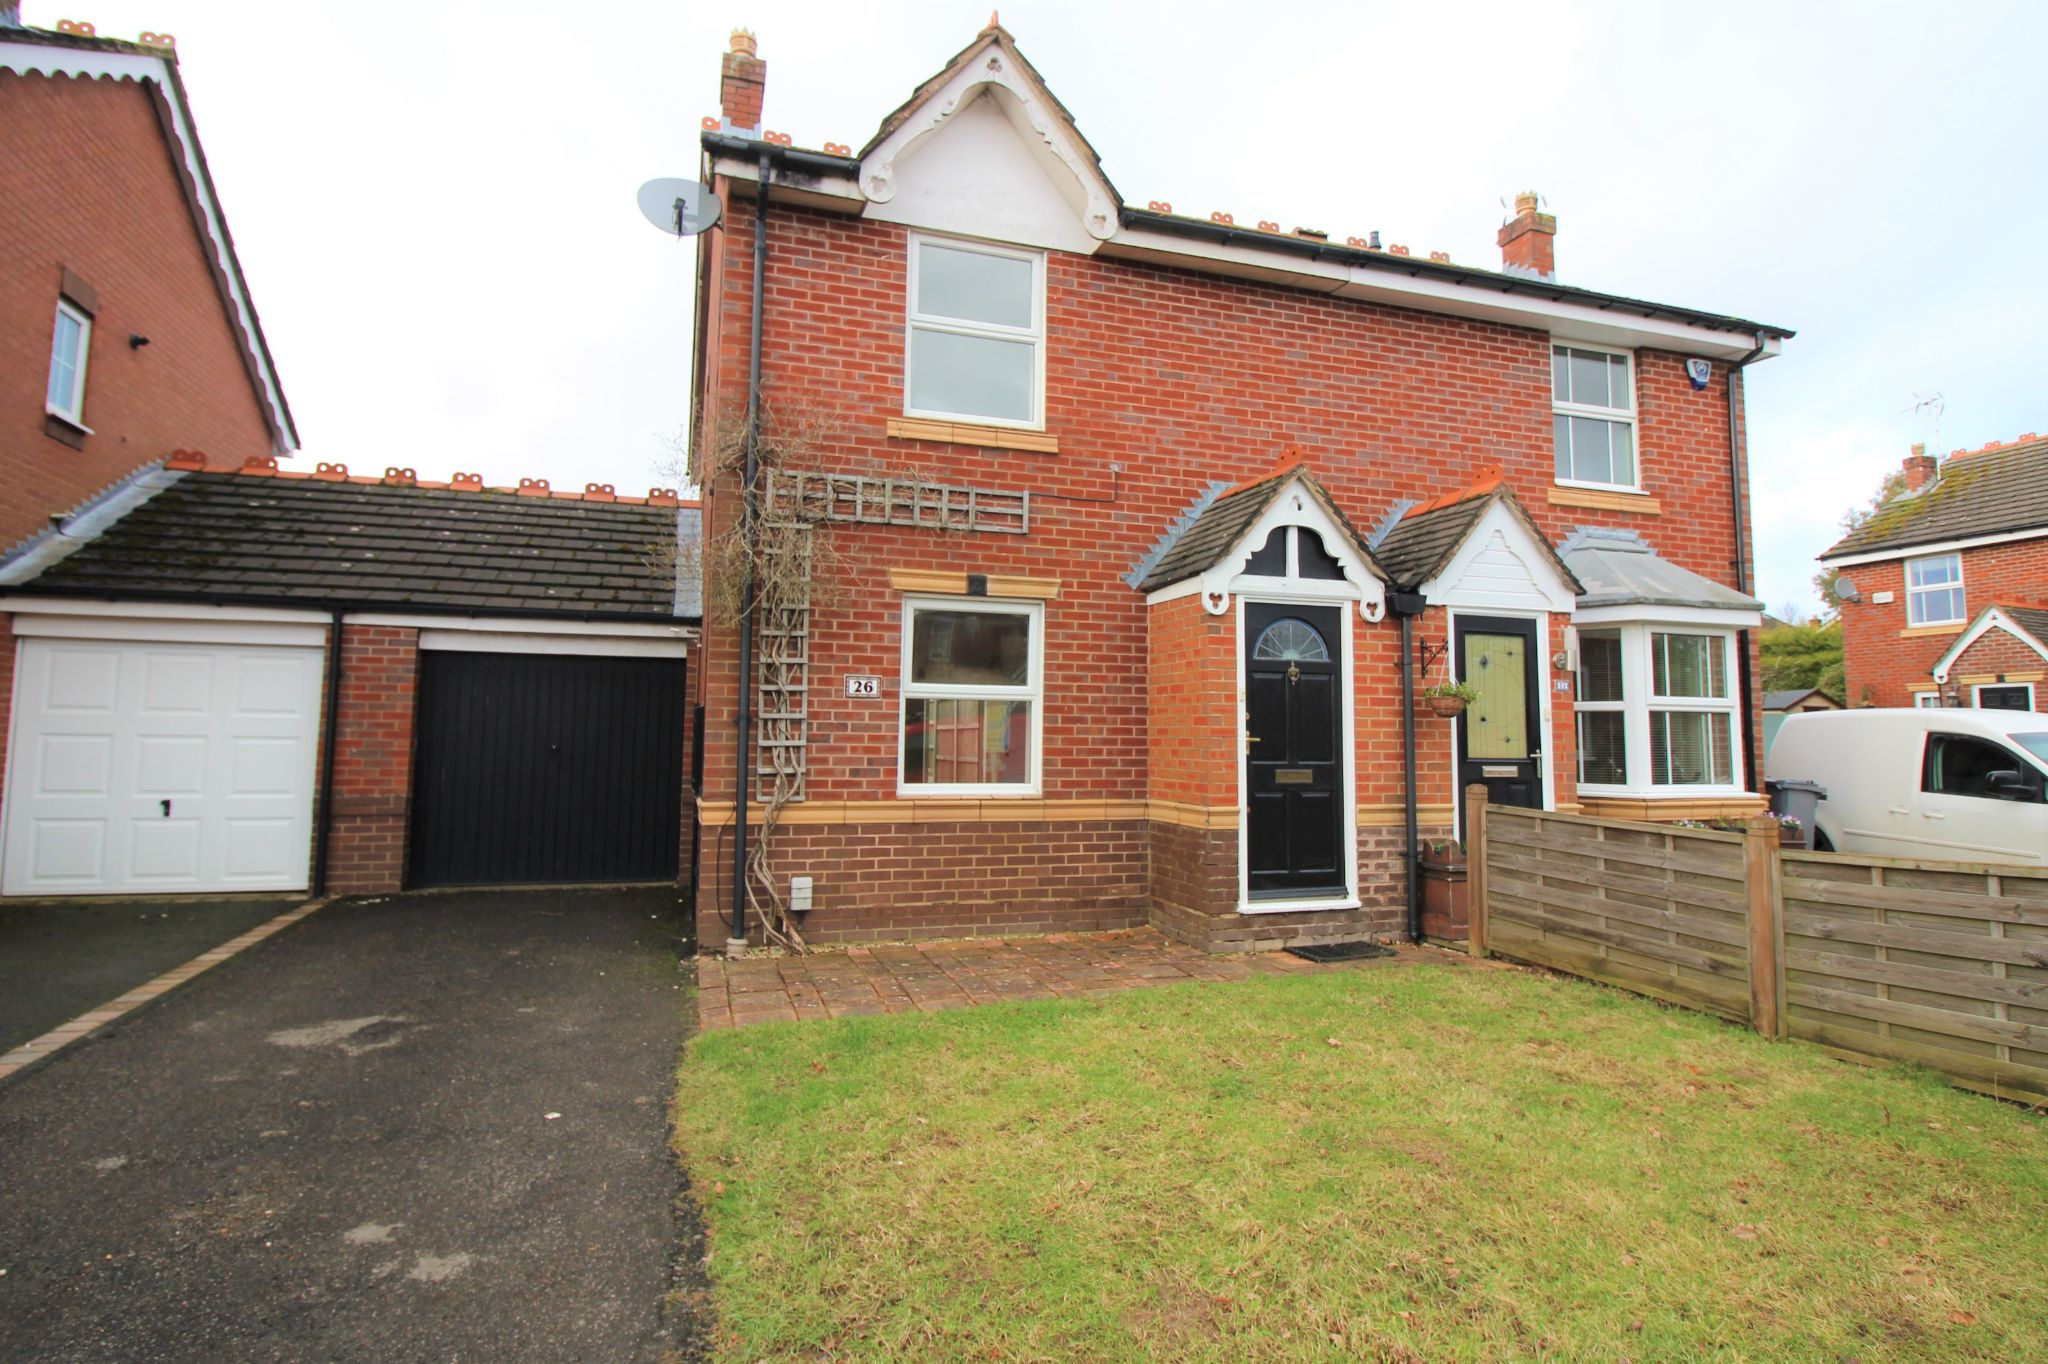 3 bedroom semi-detached house Let Agreed in Solihull - Photograph 1.